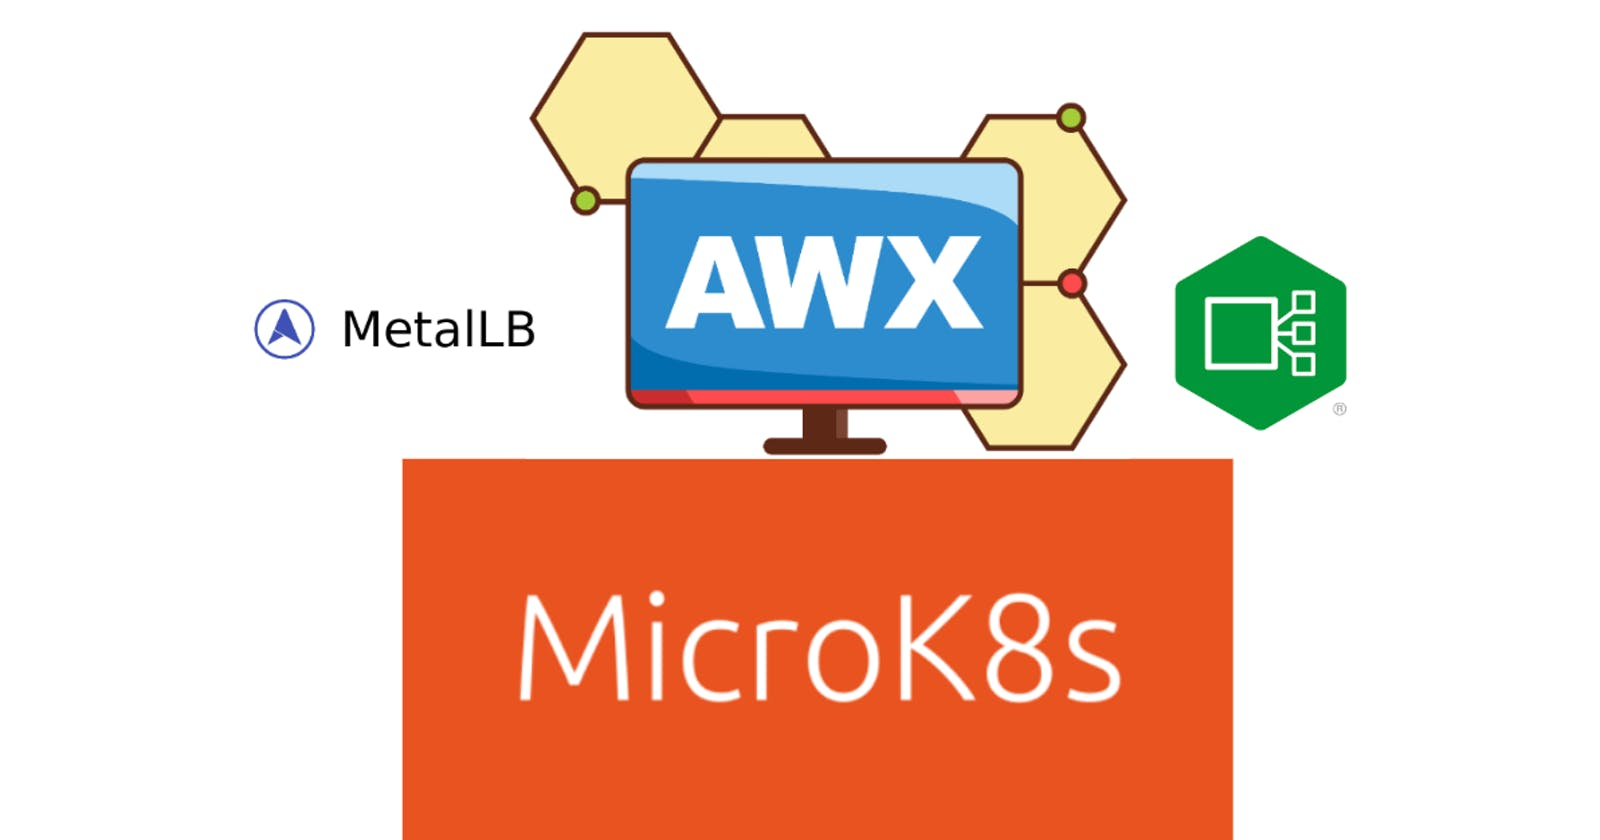 Install Ansible AWX 19 on Microk8s